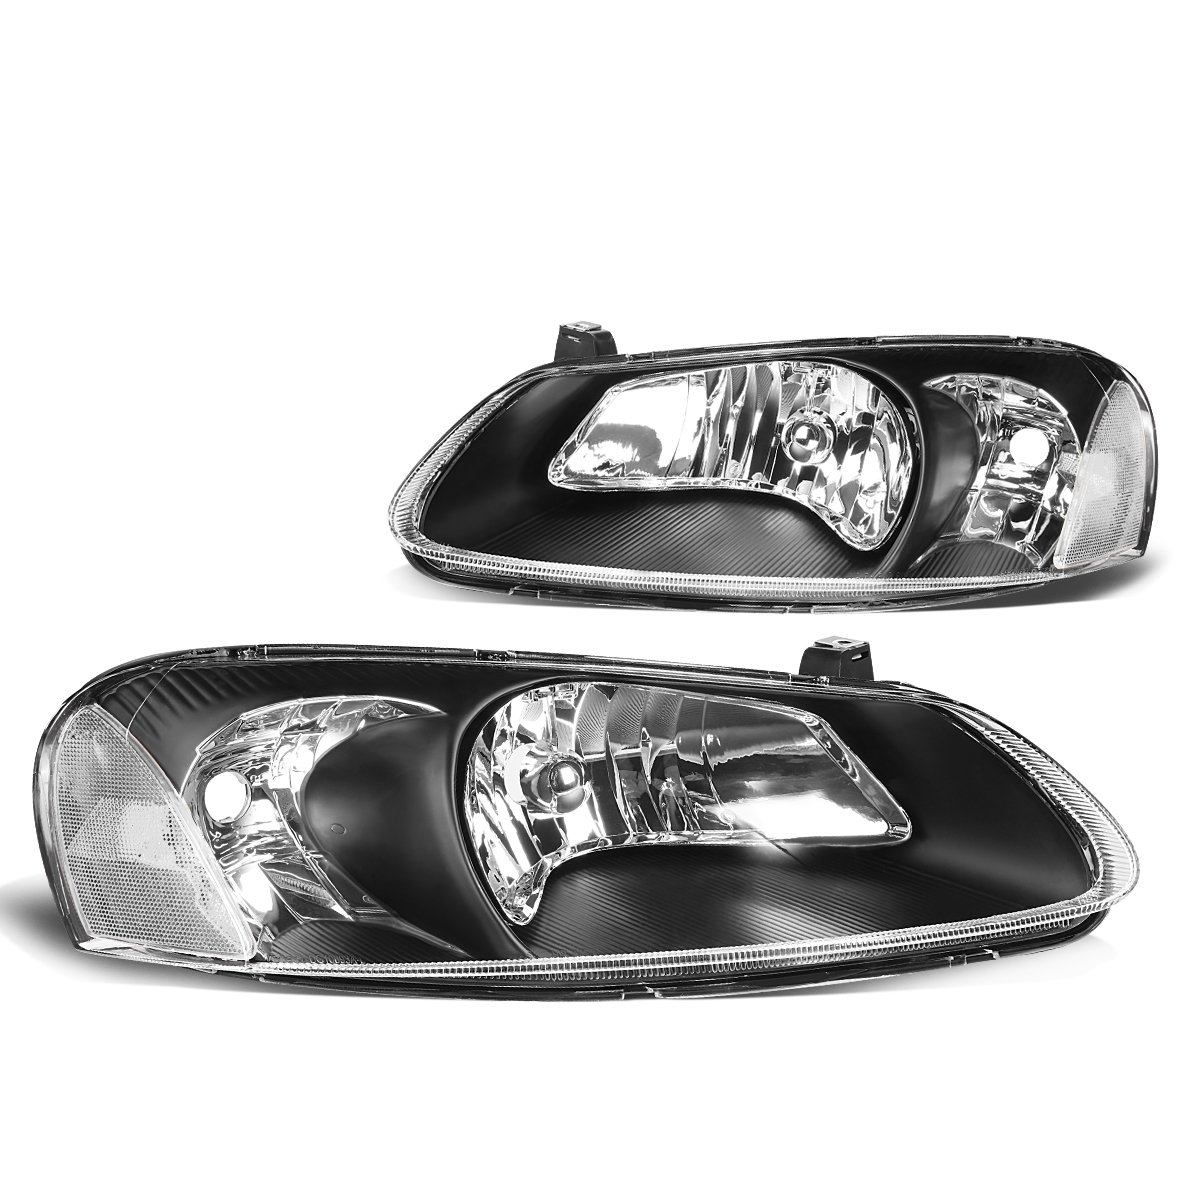 For 00-01 Nissan Maxima DNA Motoring HL-OH-075-SM-AM Pair Smoked Housing Headlight